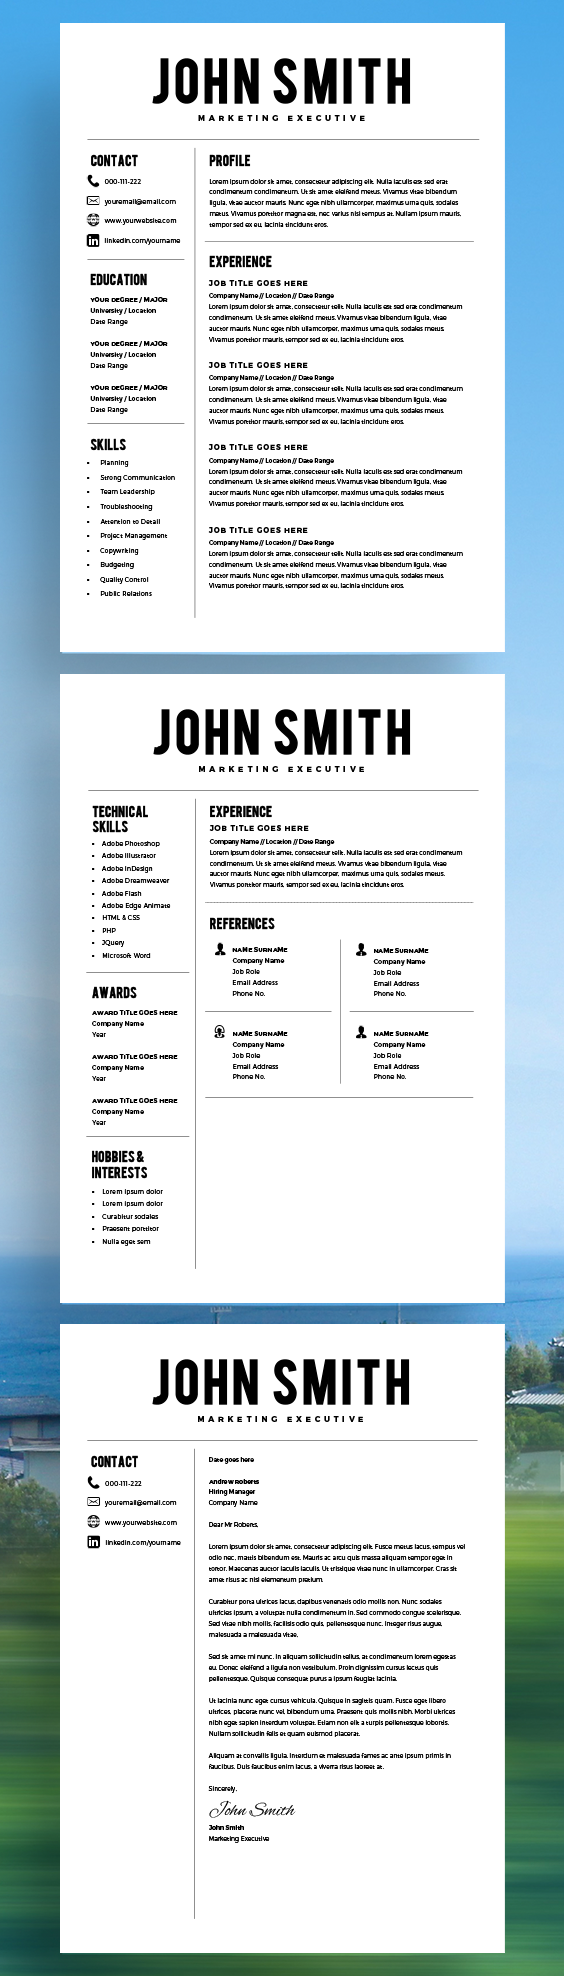 resume template  resume builder  cv template  free cover letter  also resume template  resume builder  cv template  free cover letter  msword on